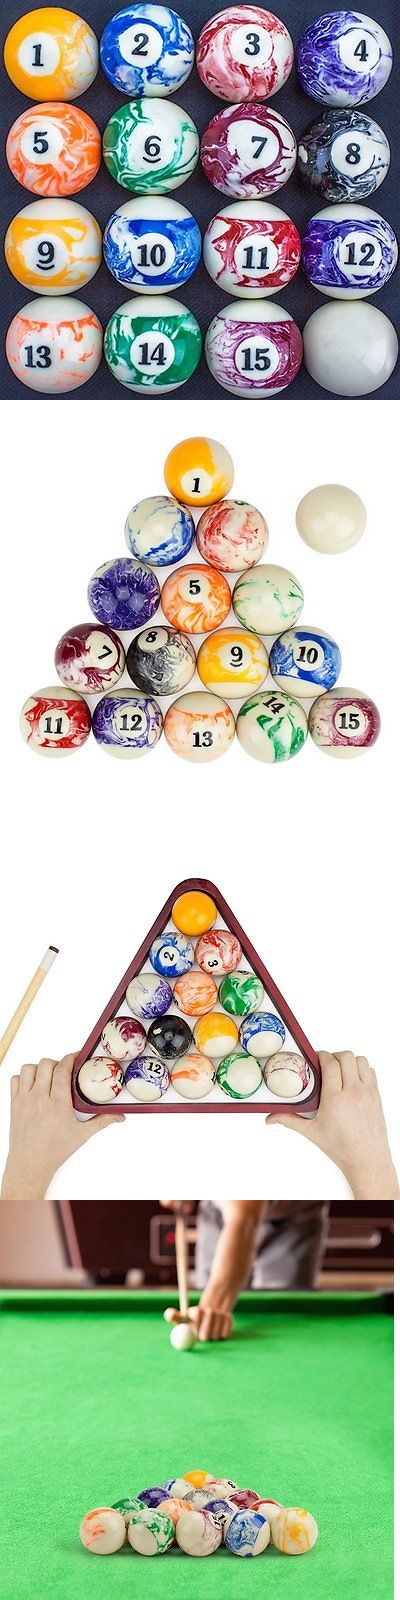 Complete Ball Sets 75193: Marbled Pool Table Billiard Ball Set By Felson Billiard Supplies -> BUY IT NOW ONLY: $48.61 on eBay!